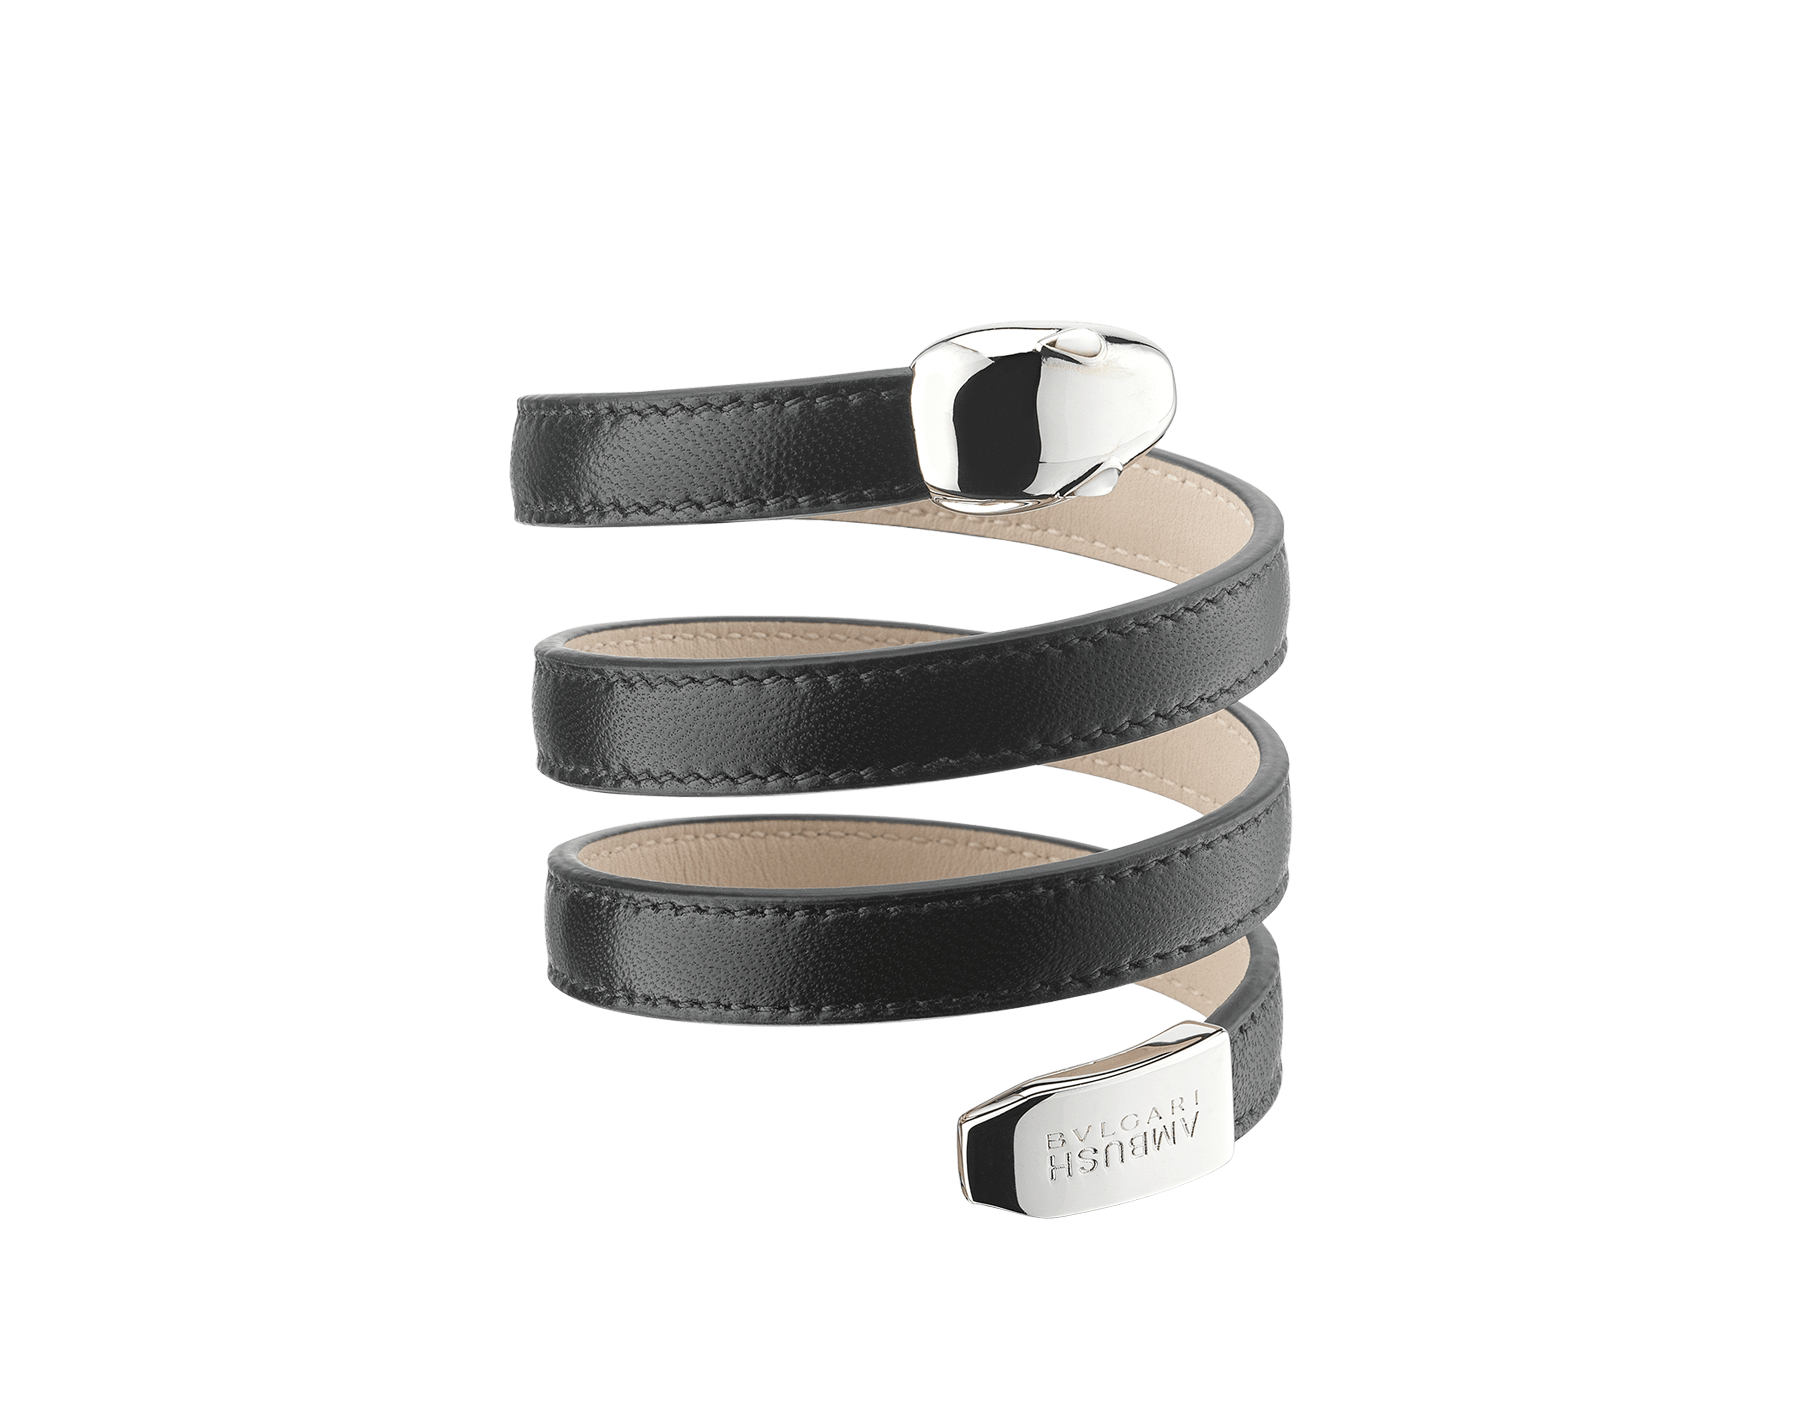 """""""Ambush x Bvlgari"""" Serpenti multi-coiled bracelet in purple nappa leather. This model features palladium plated brass iconic snakehead décor, finished with black onyx eyes, and snake tail with """"BVLGARI AMBUSH"""" logo. Limited edition. YA-BRACELET image 1"""